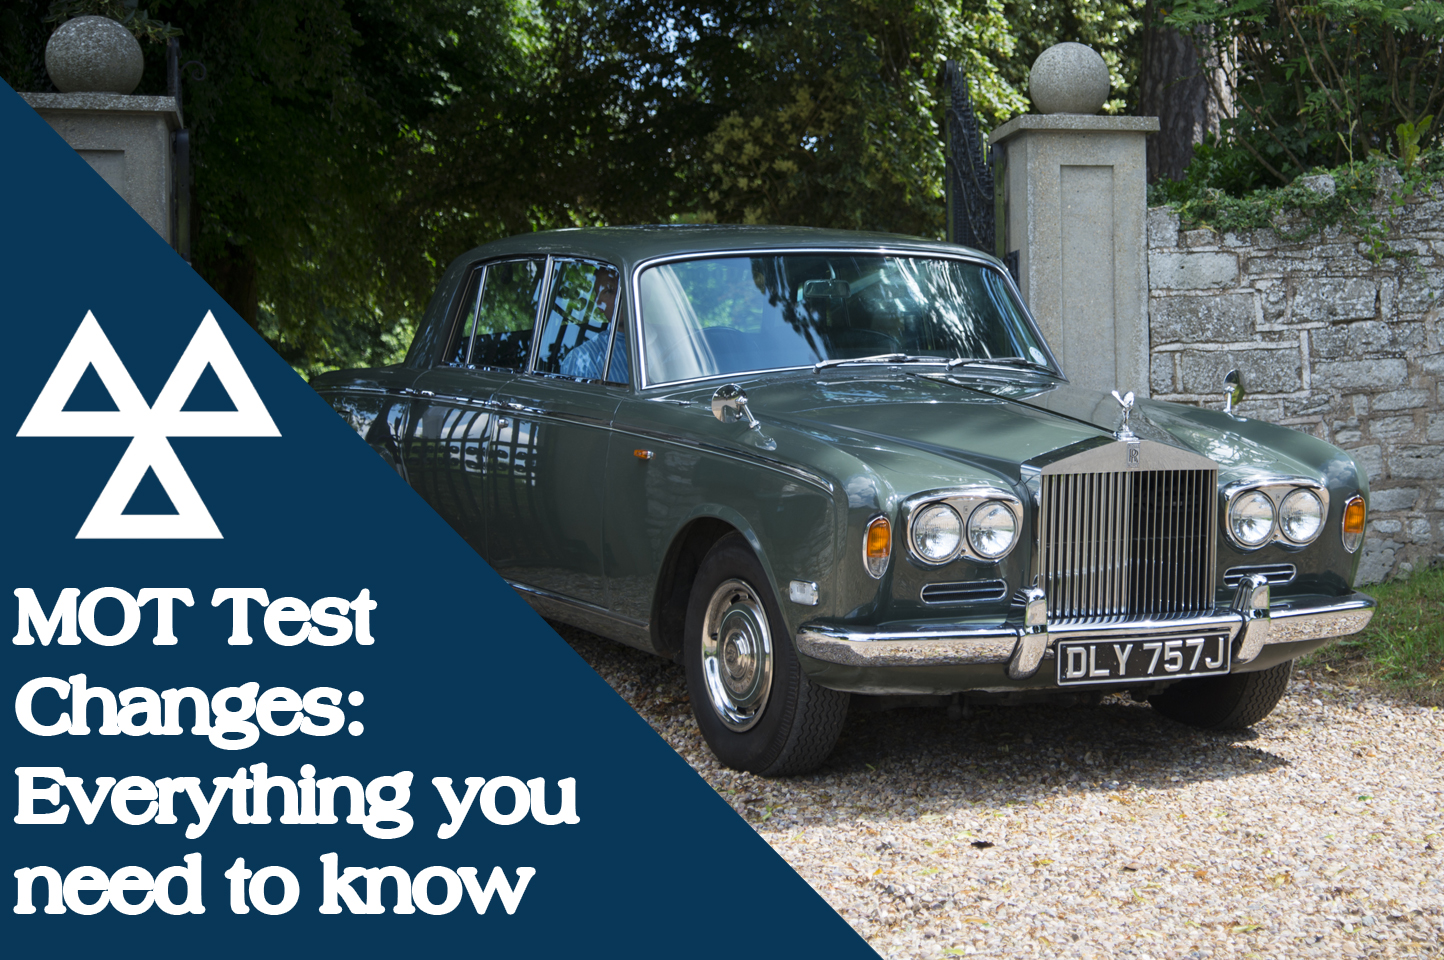 MOT test changes: Everything you need to know